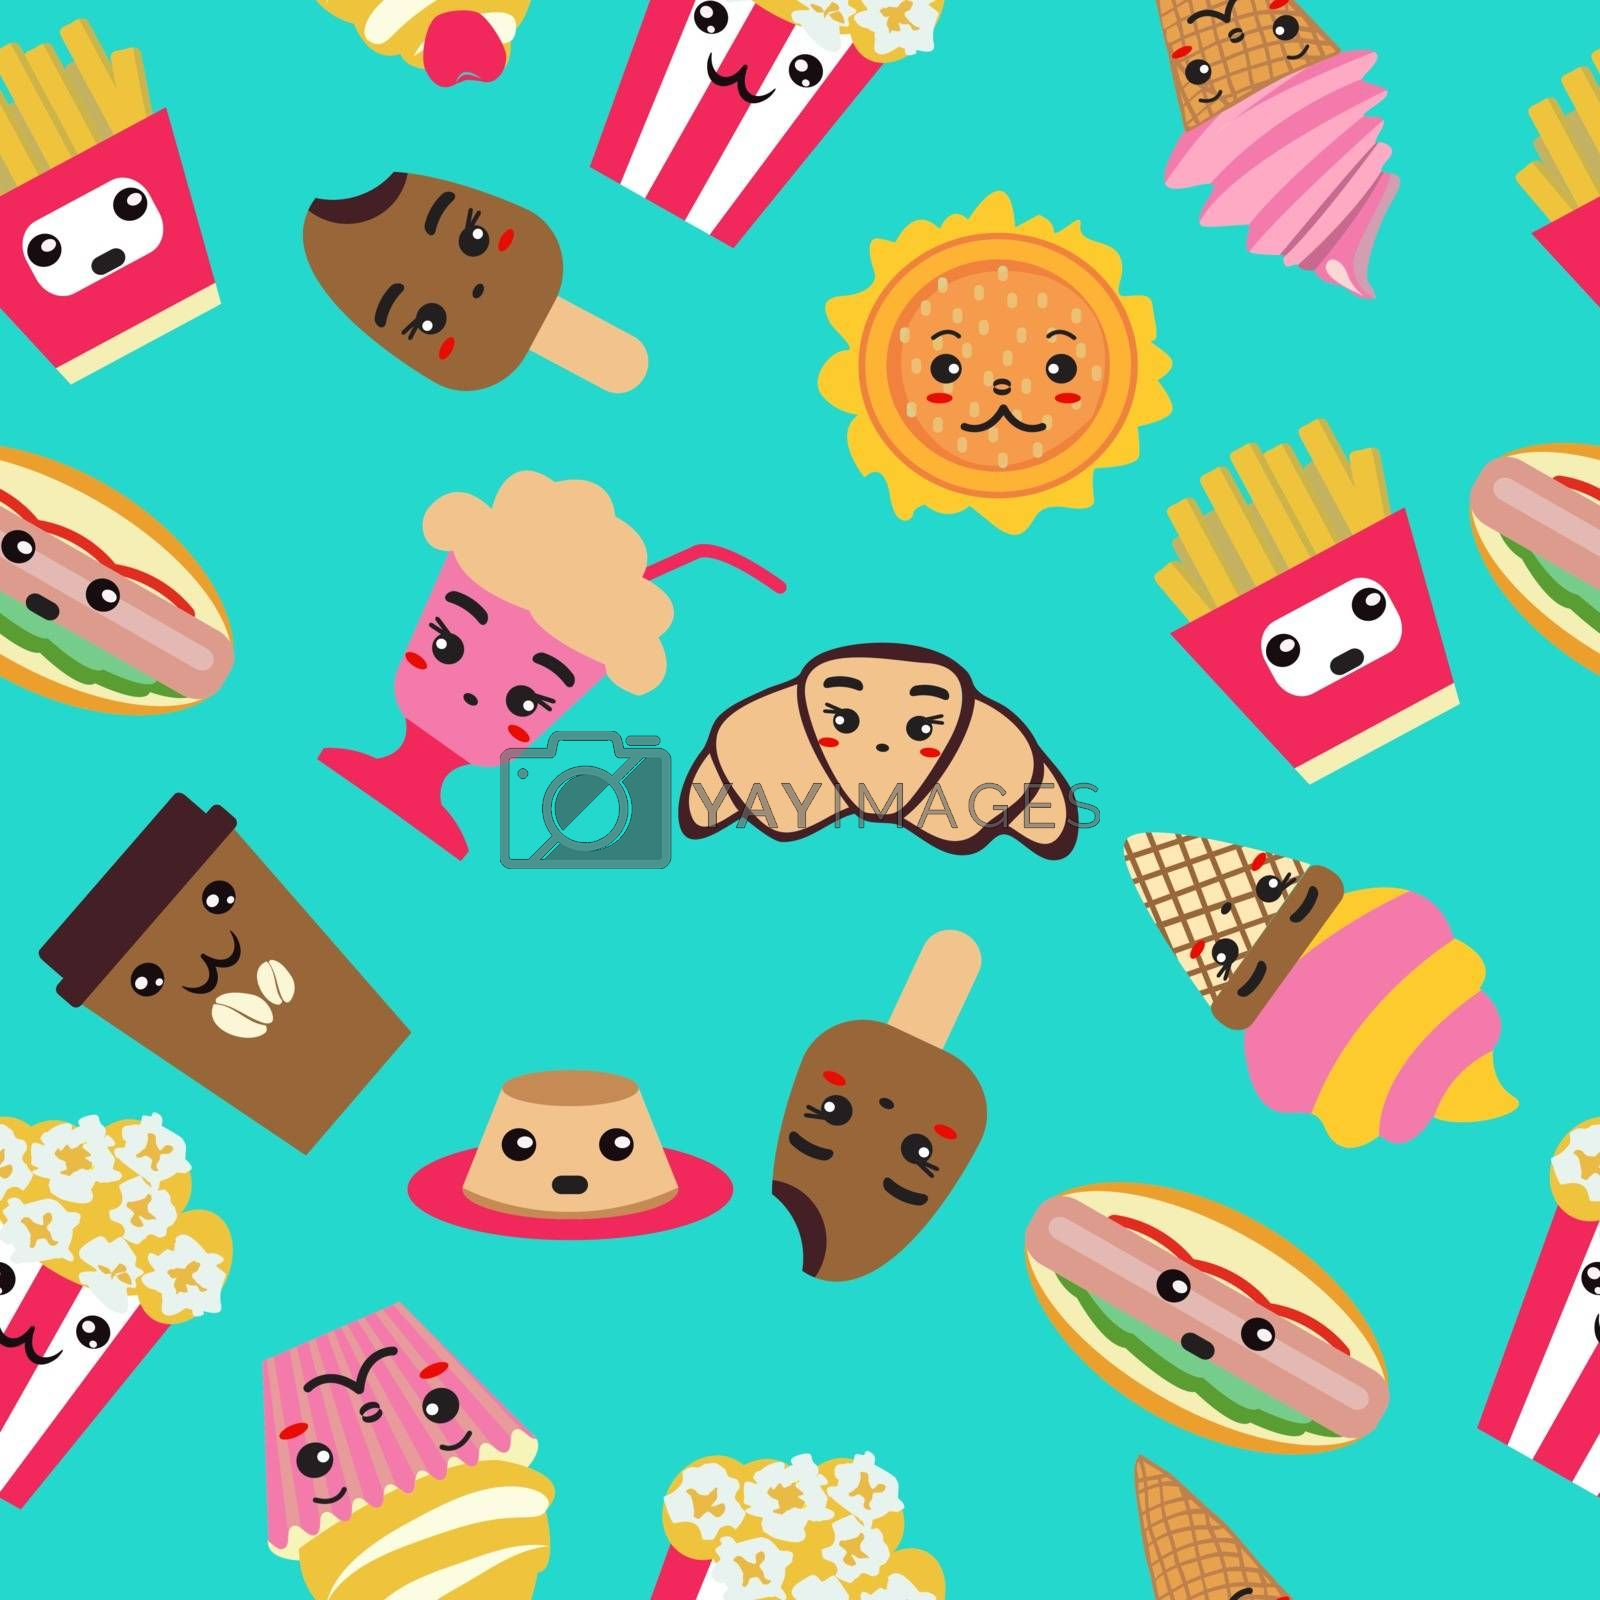 Seamless pattern with fast food cute background. Coffee, burger, french fries, ice cream, hot dog, popcorn, cupcake Kawai and cute food illustration